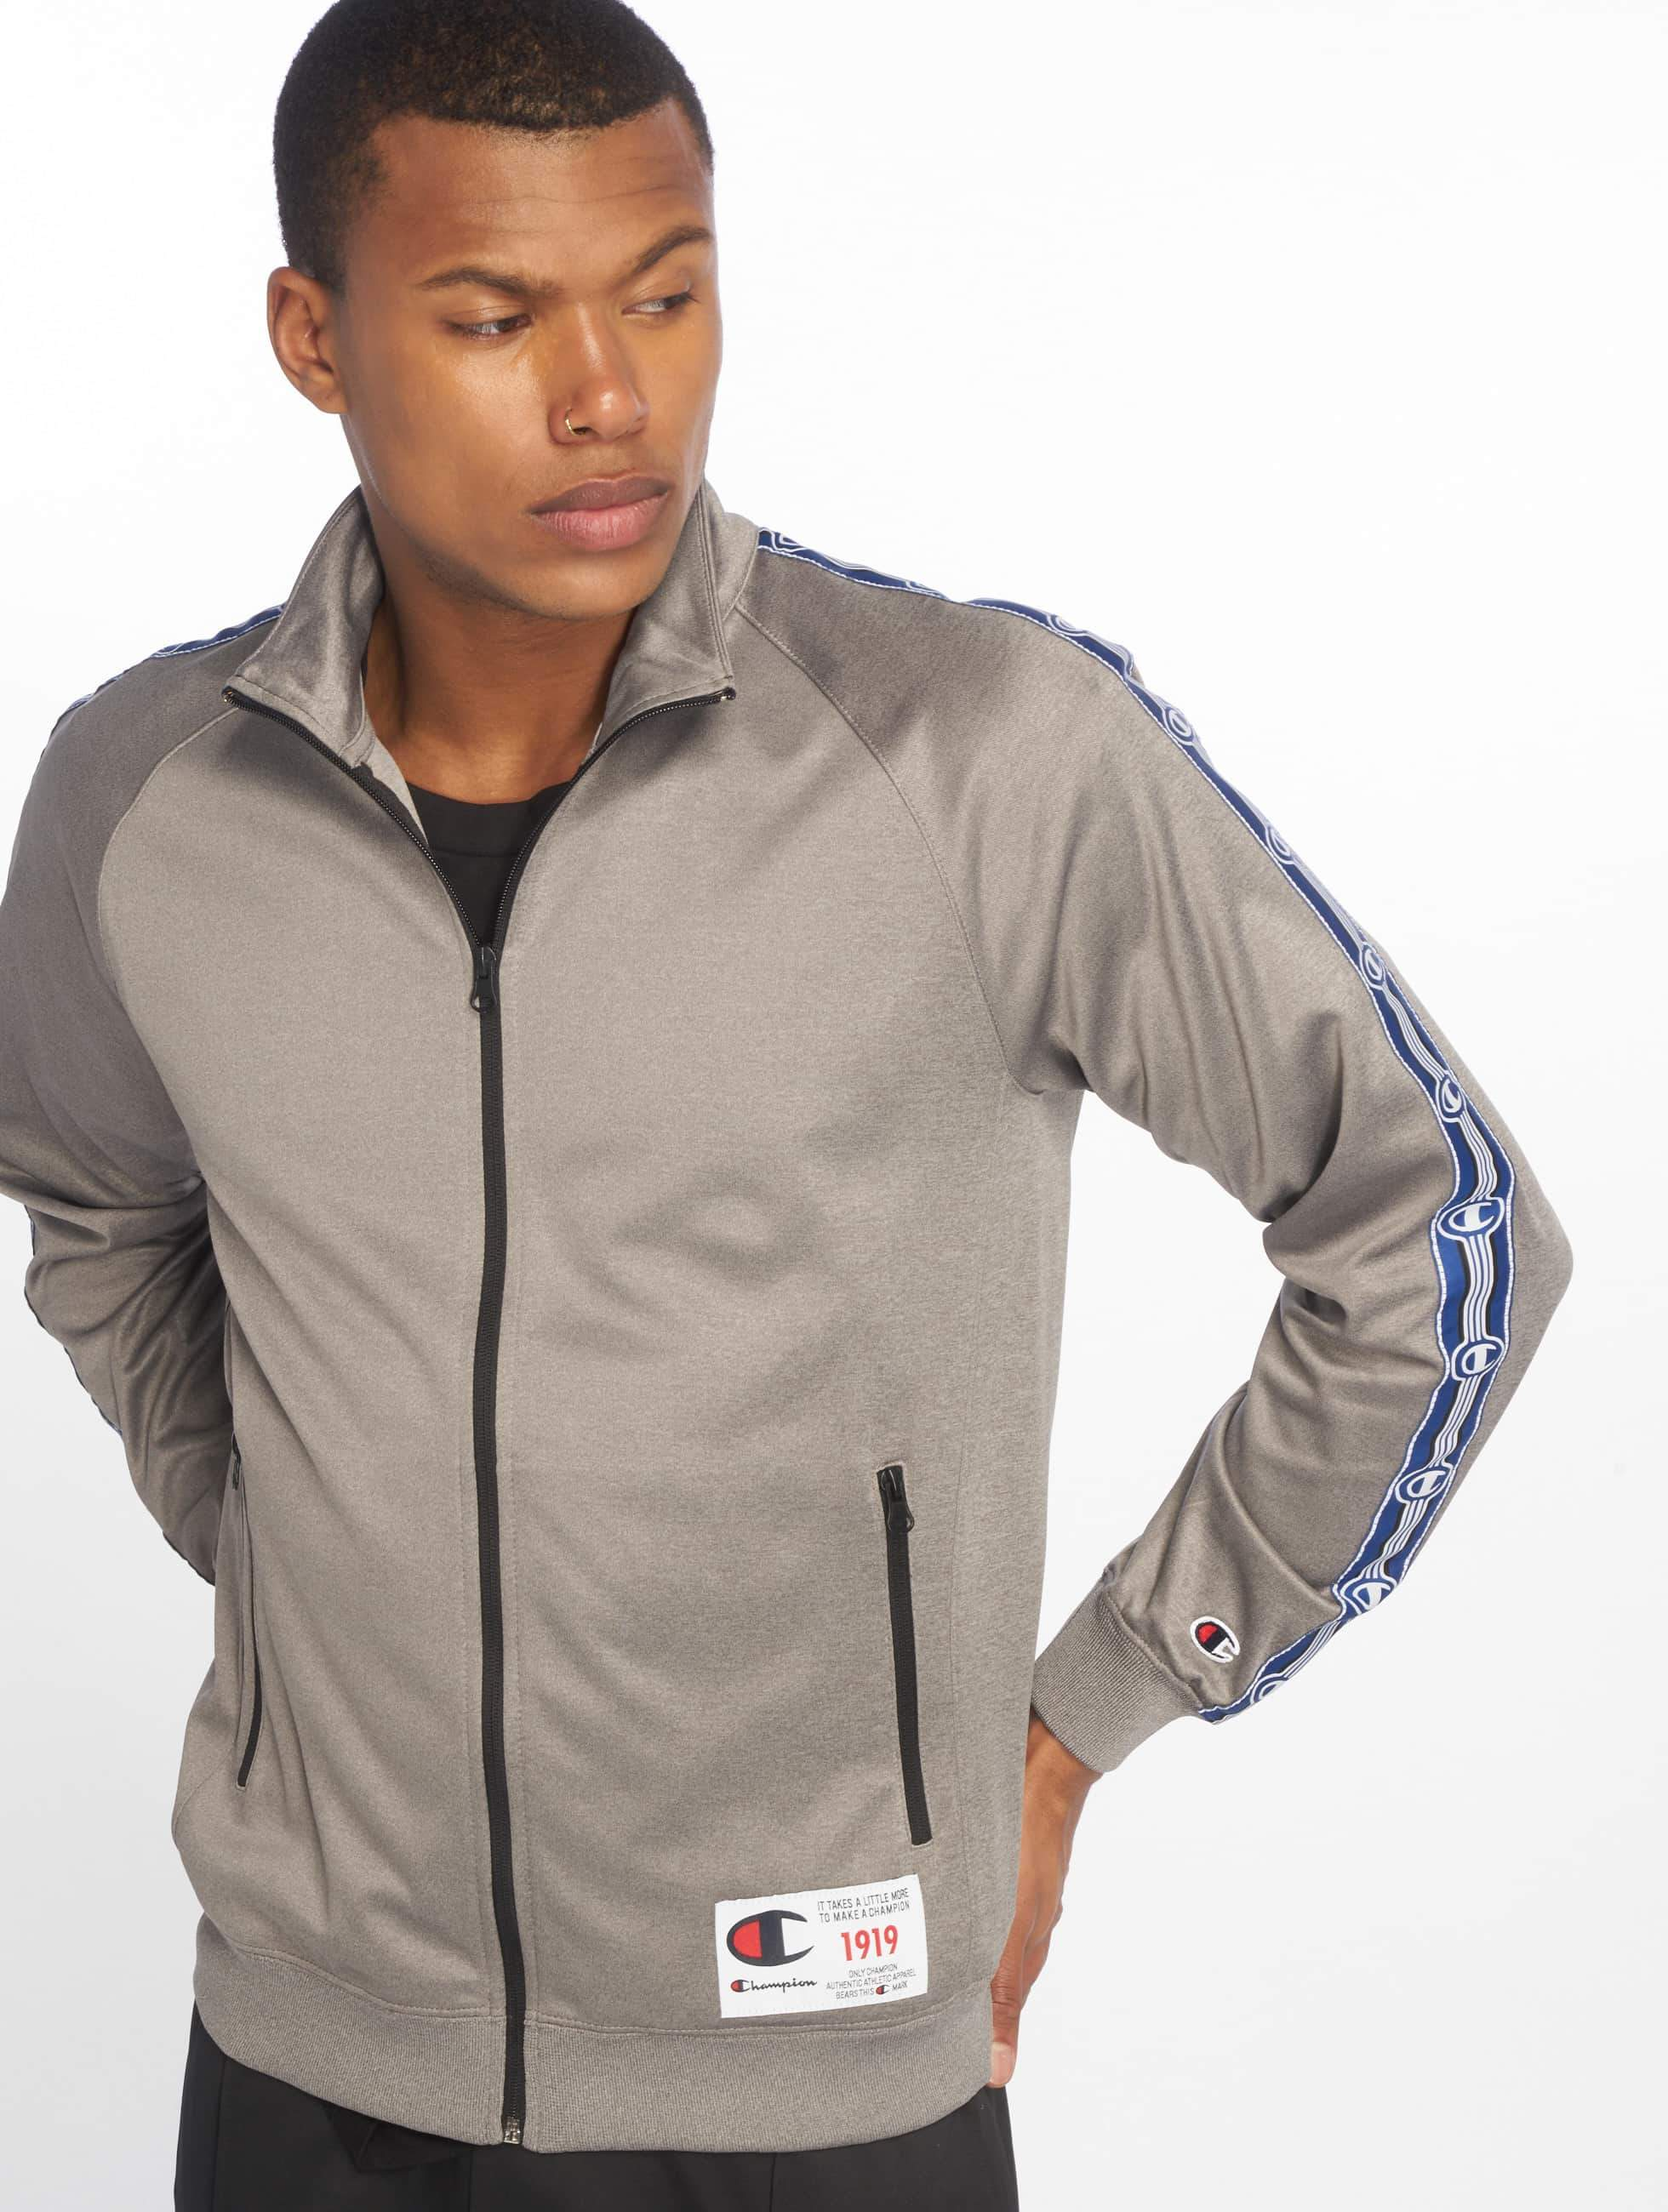 Champion Athletics Herren Jacken   Übergangsjacke Athleisure